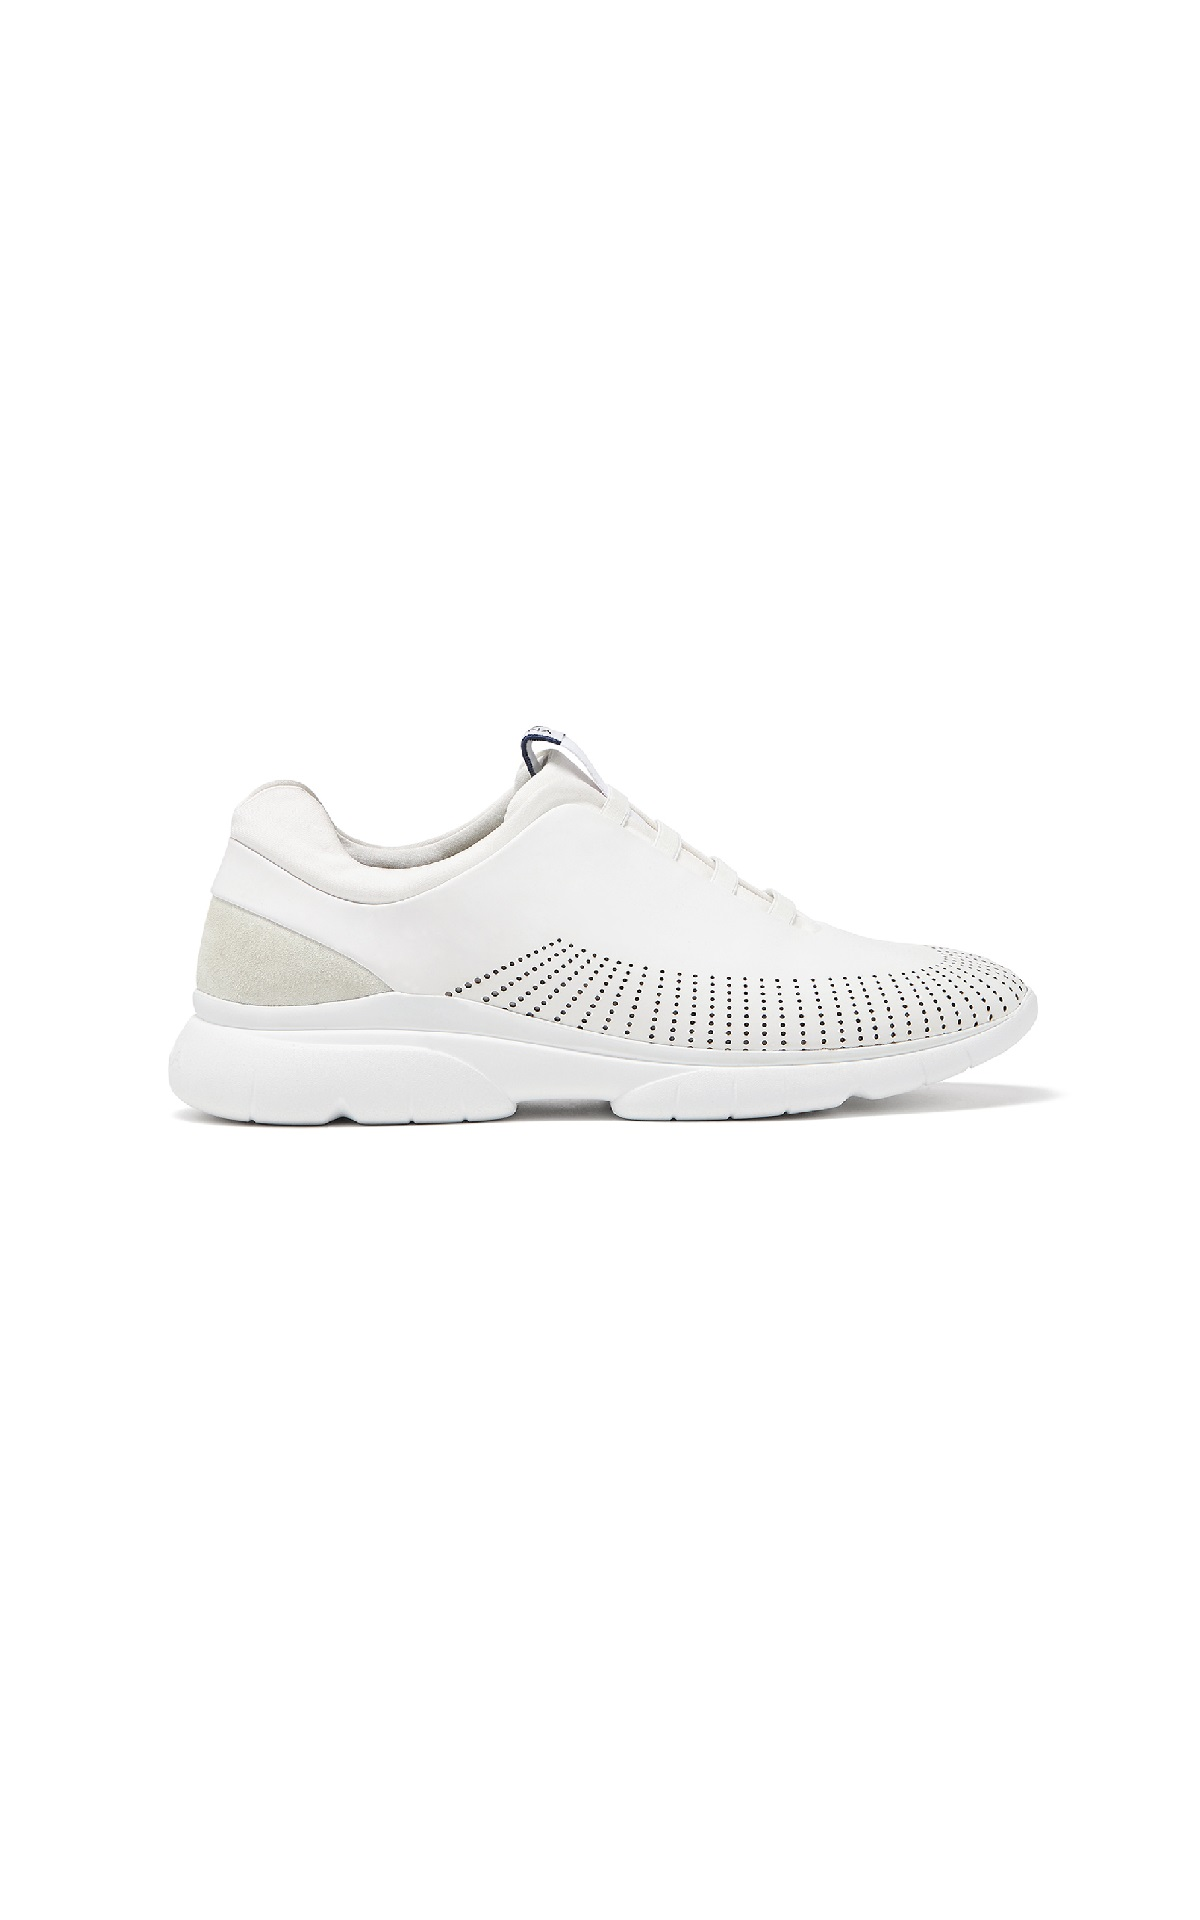 White sneakers Zegna